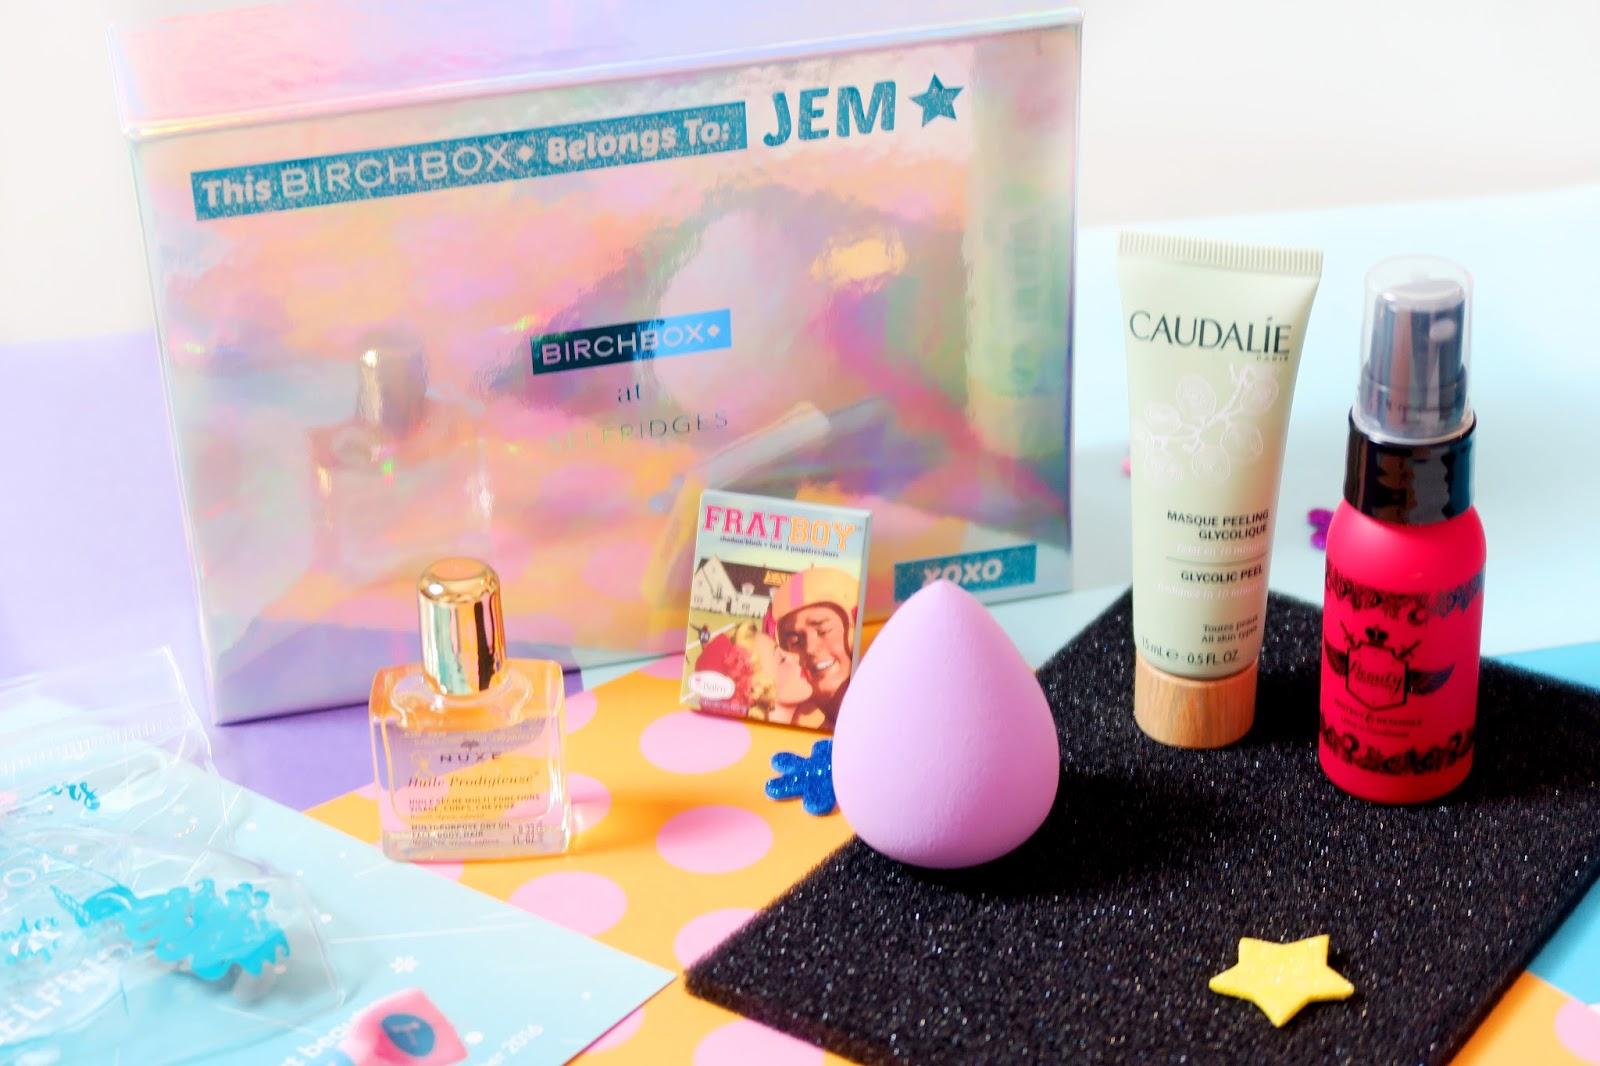 An image of a Personalised Build Your Own Birchbox at Selfridges